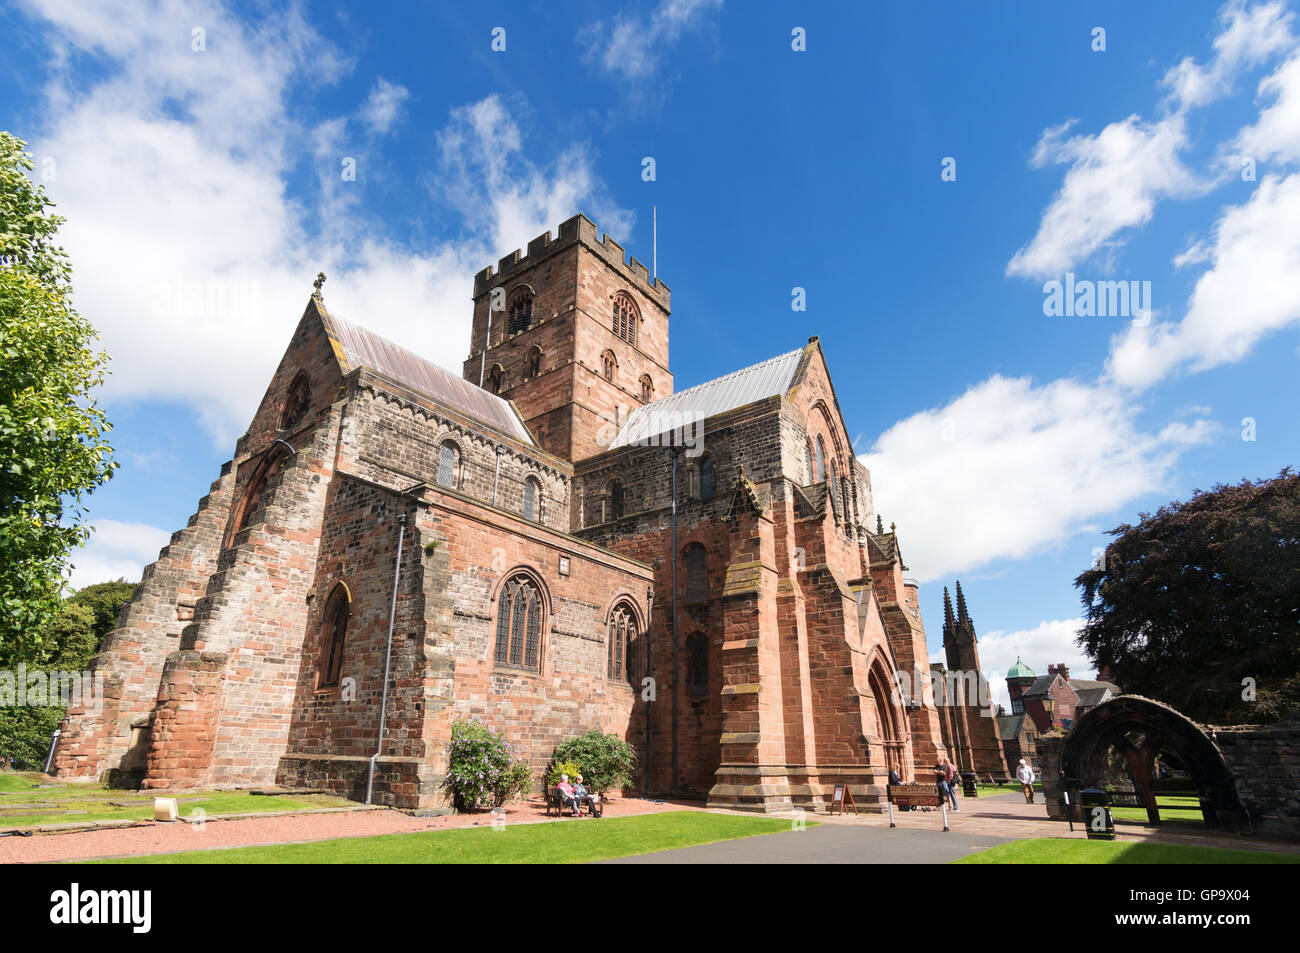 View from the south west of Carlisle cathedral, Cumbria, England, UK - Stock Image